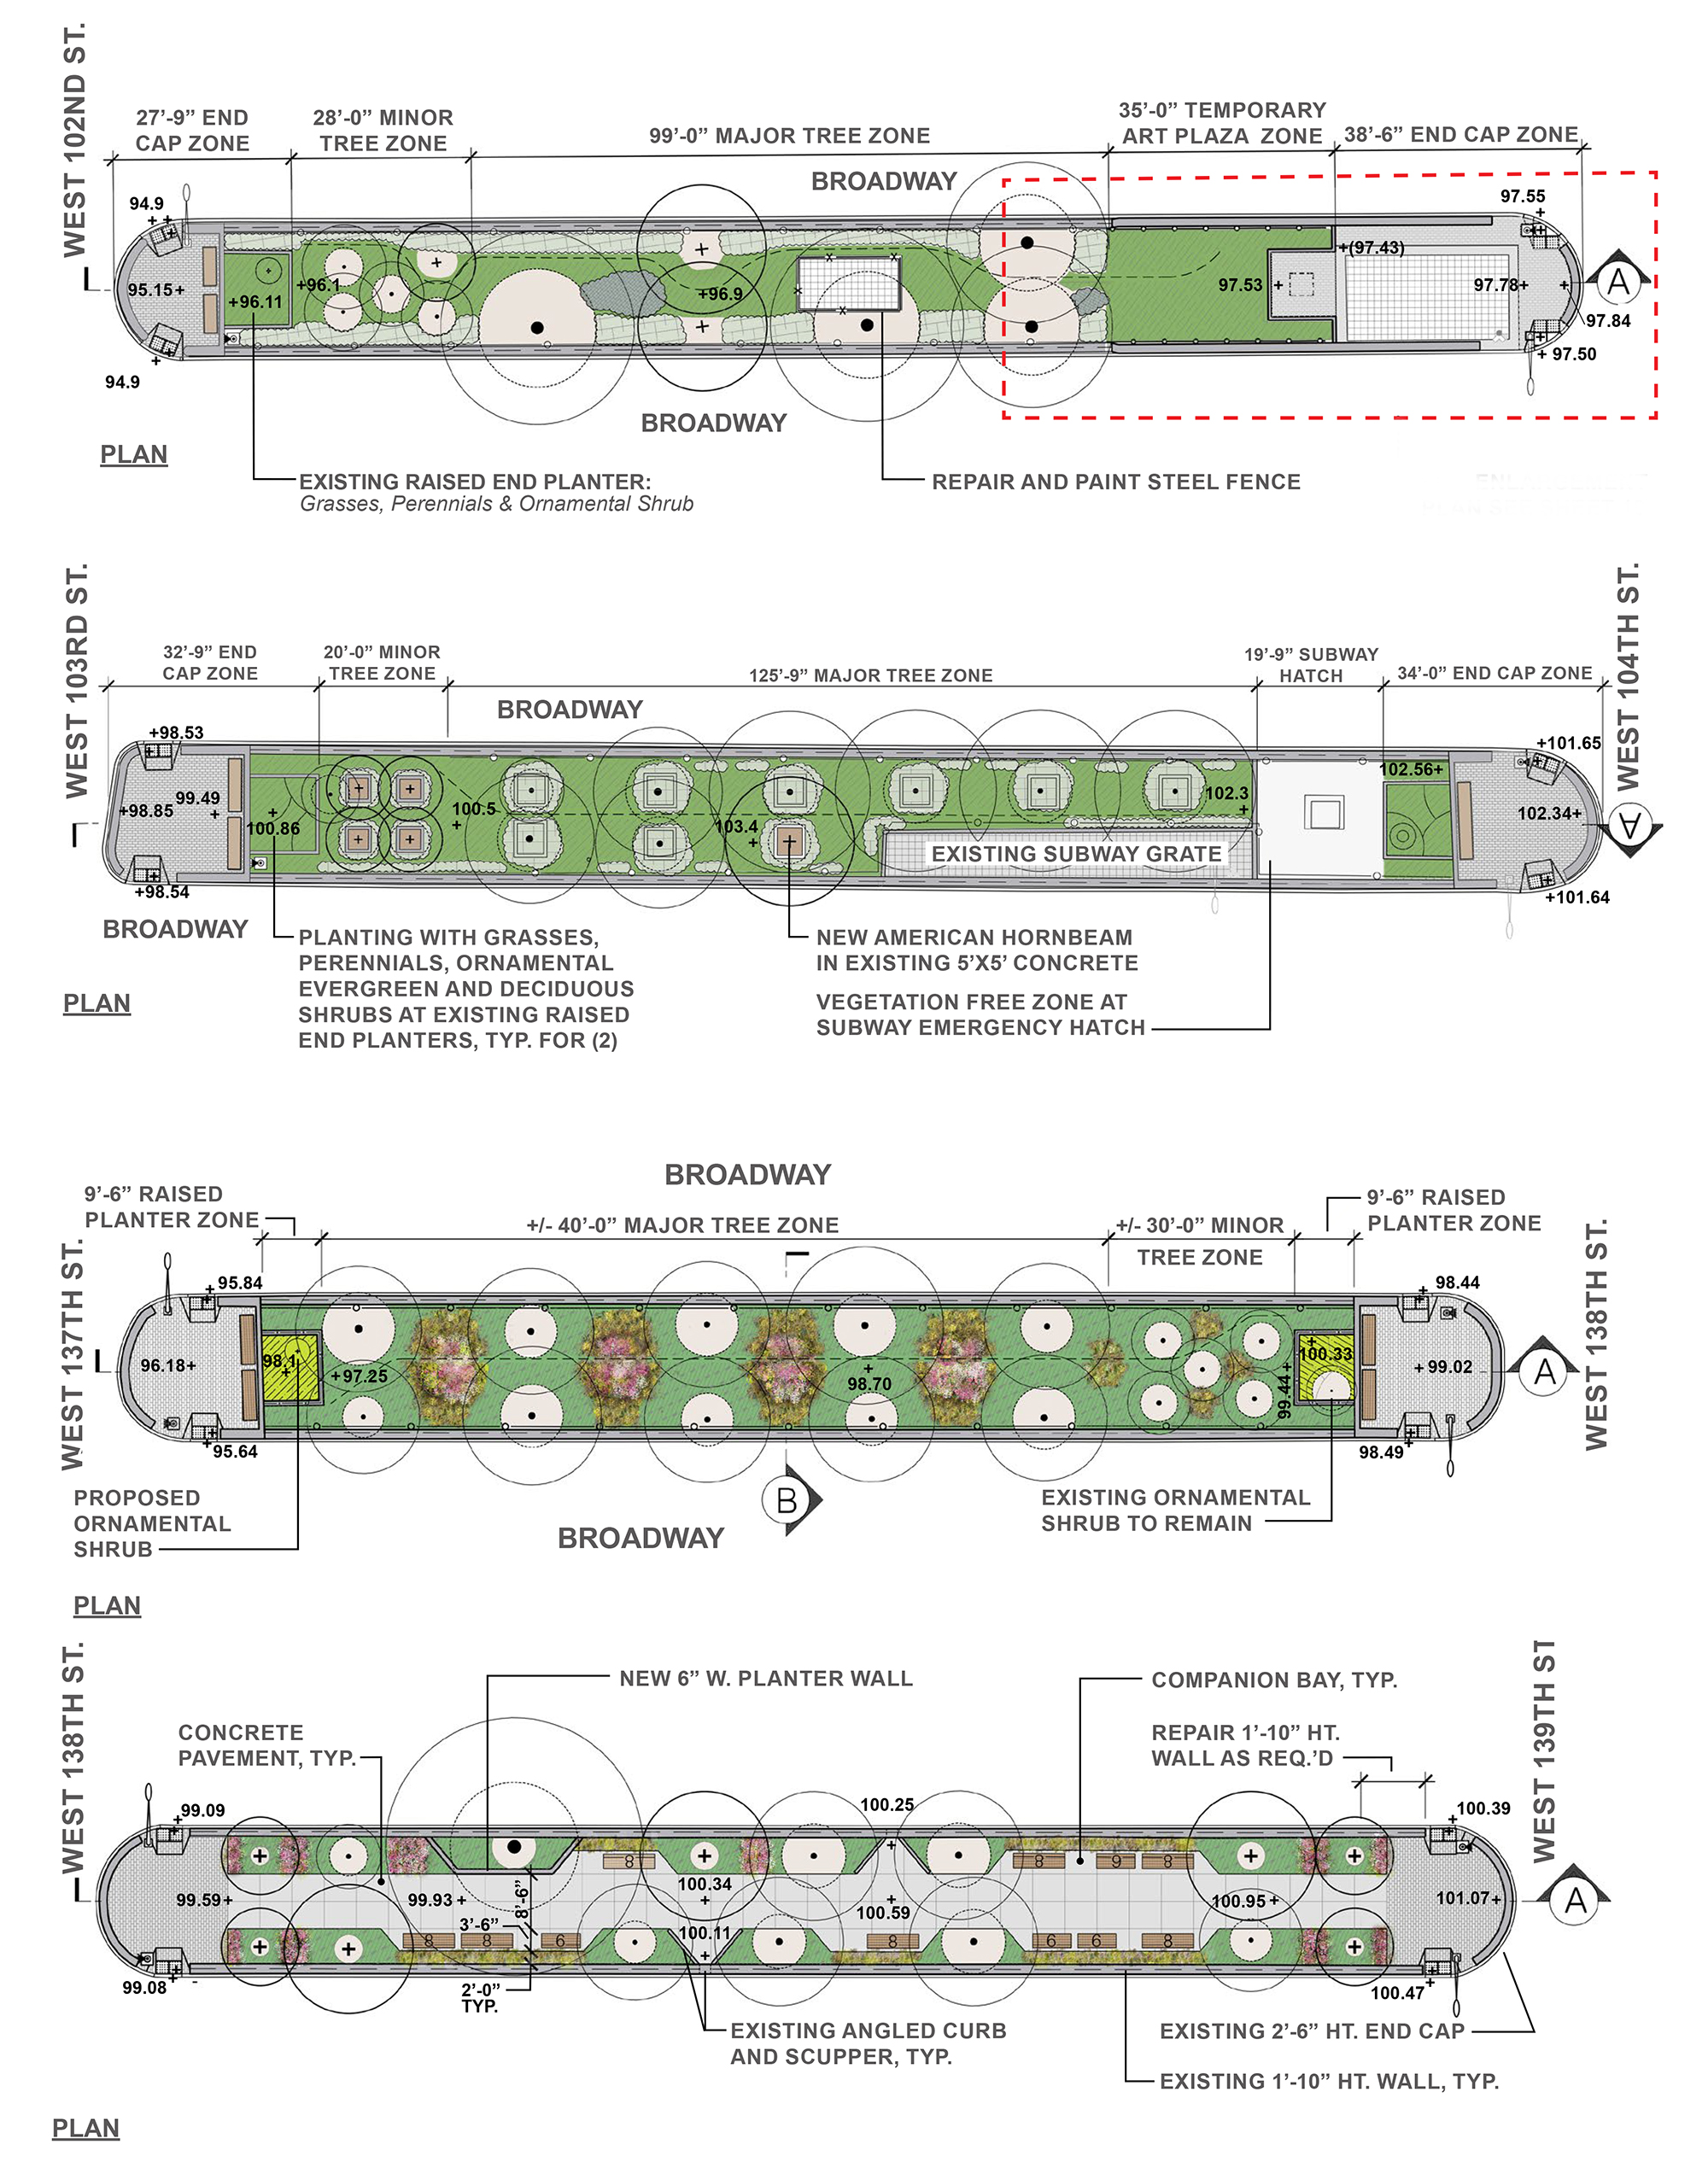 Design of Broadway Malls Reconstruction